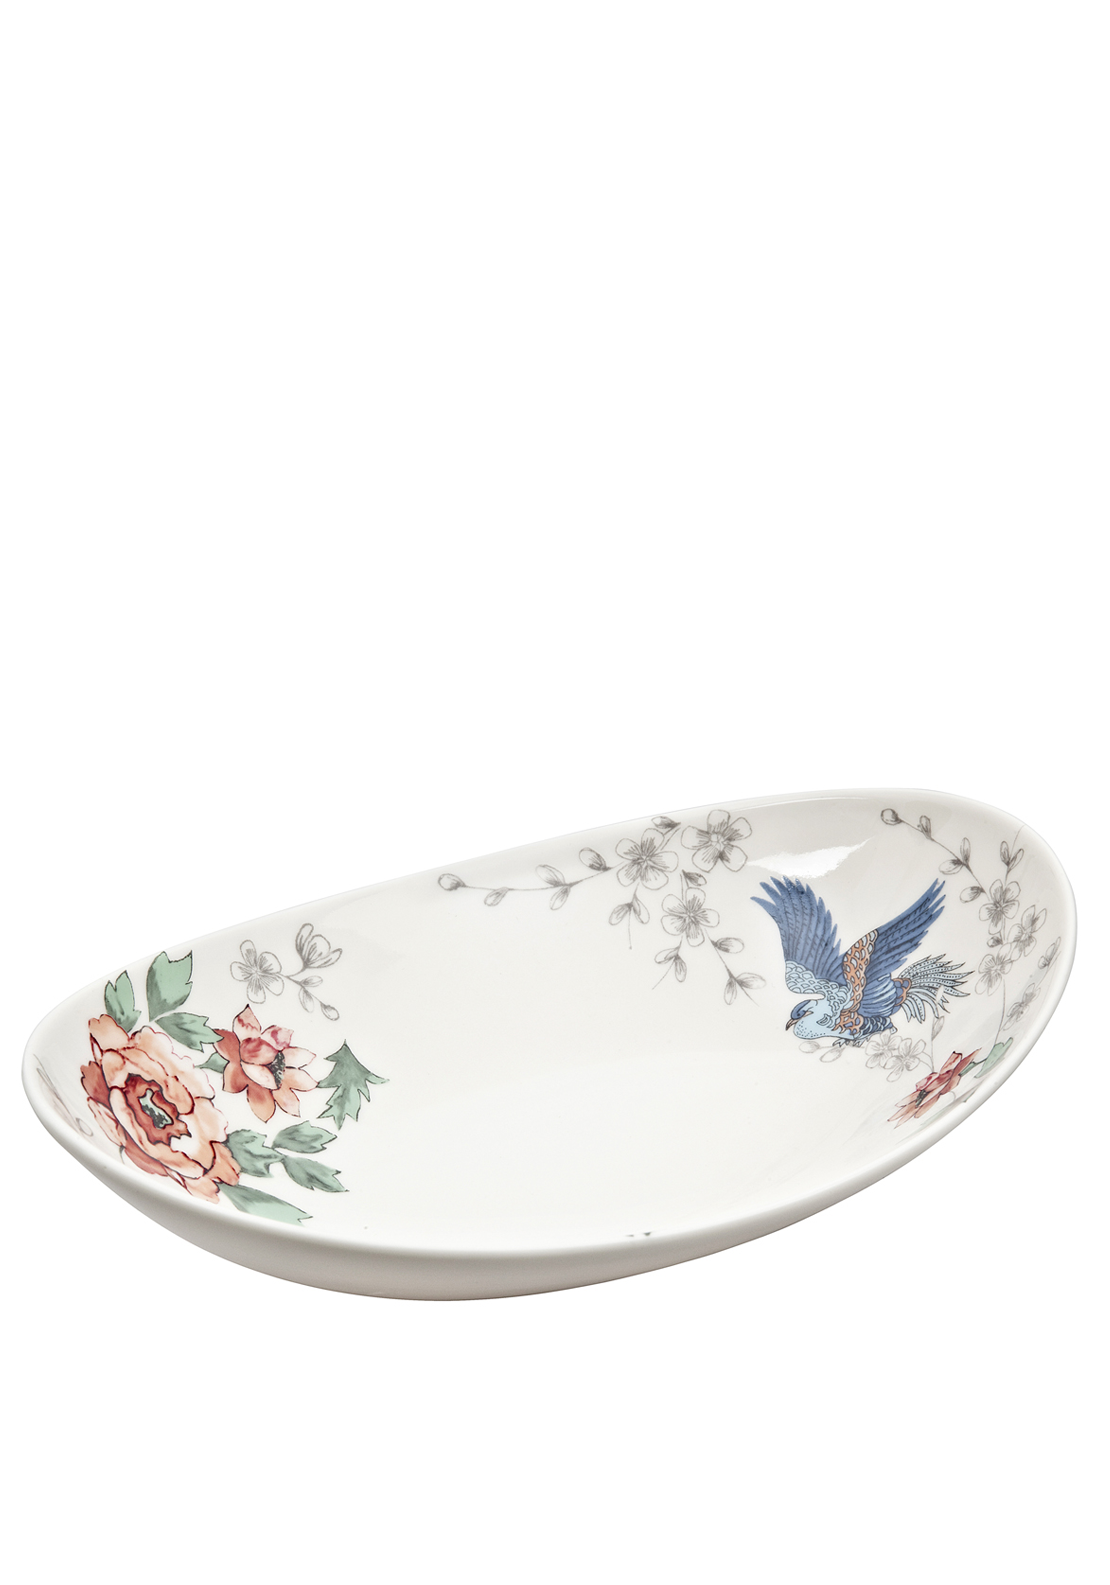 Denby Monsoon Home Kyoto Small Oval Dish, Cream